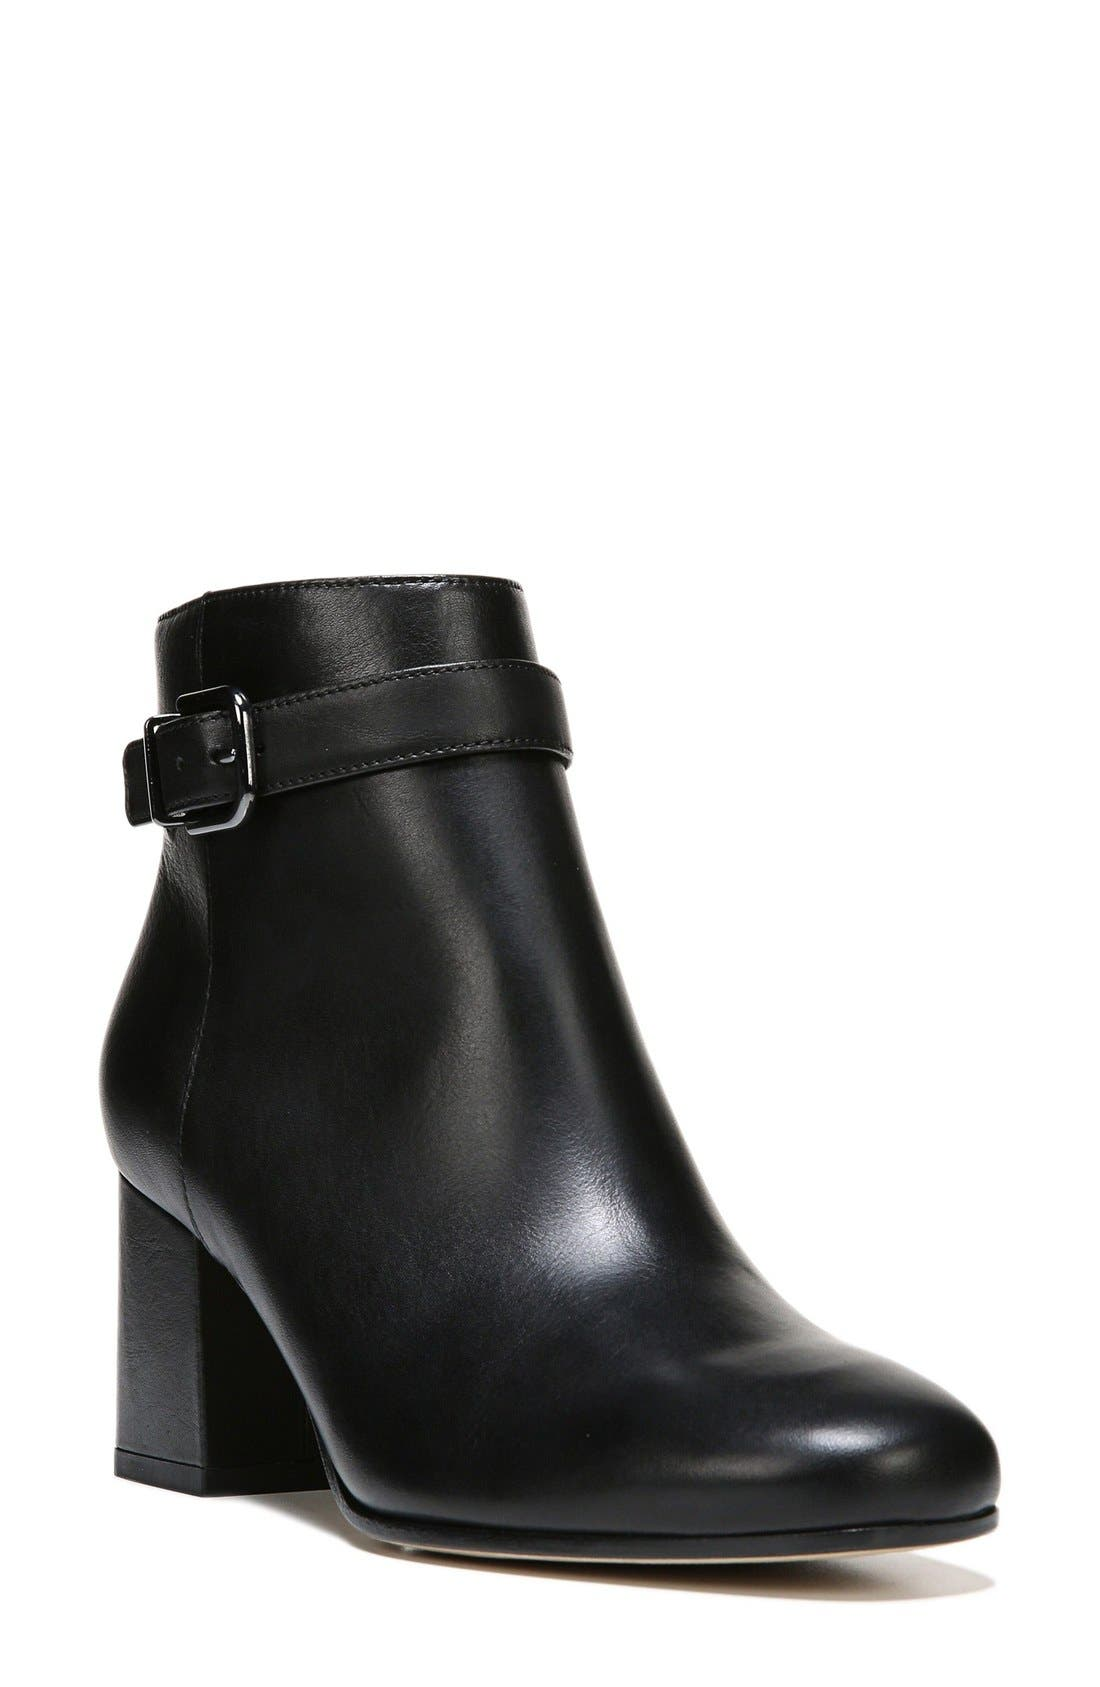 Alternate Image 1 Selected - Via Spiga Maxine Ankle Strap Bootie (Women)